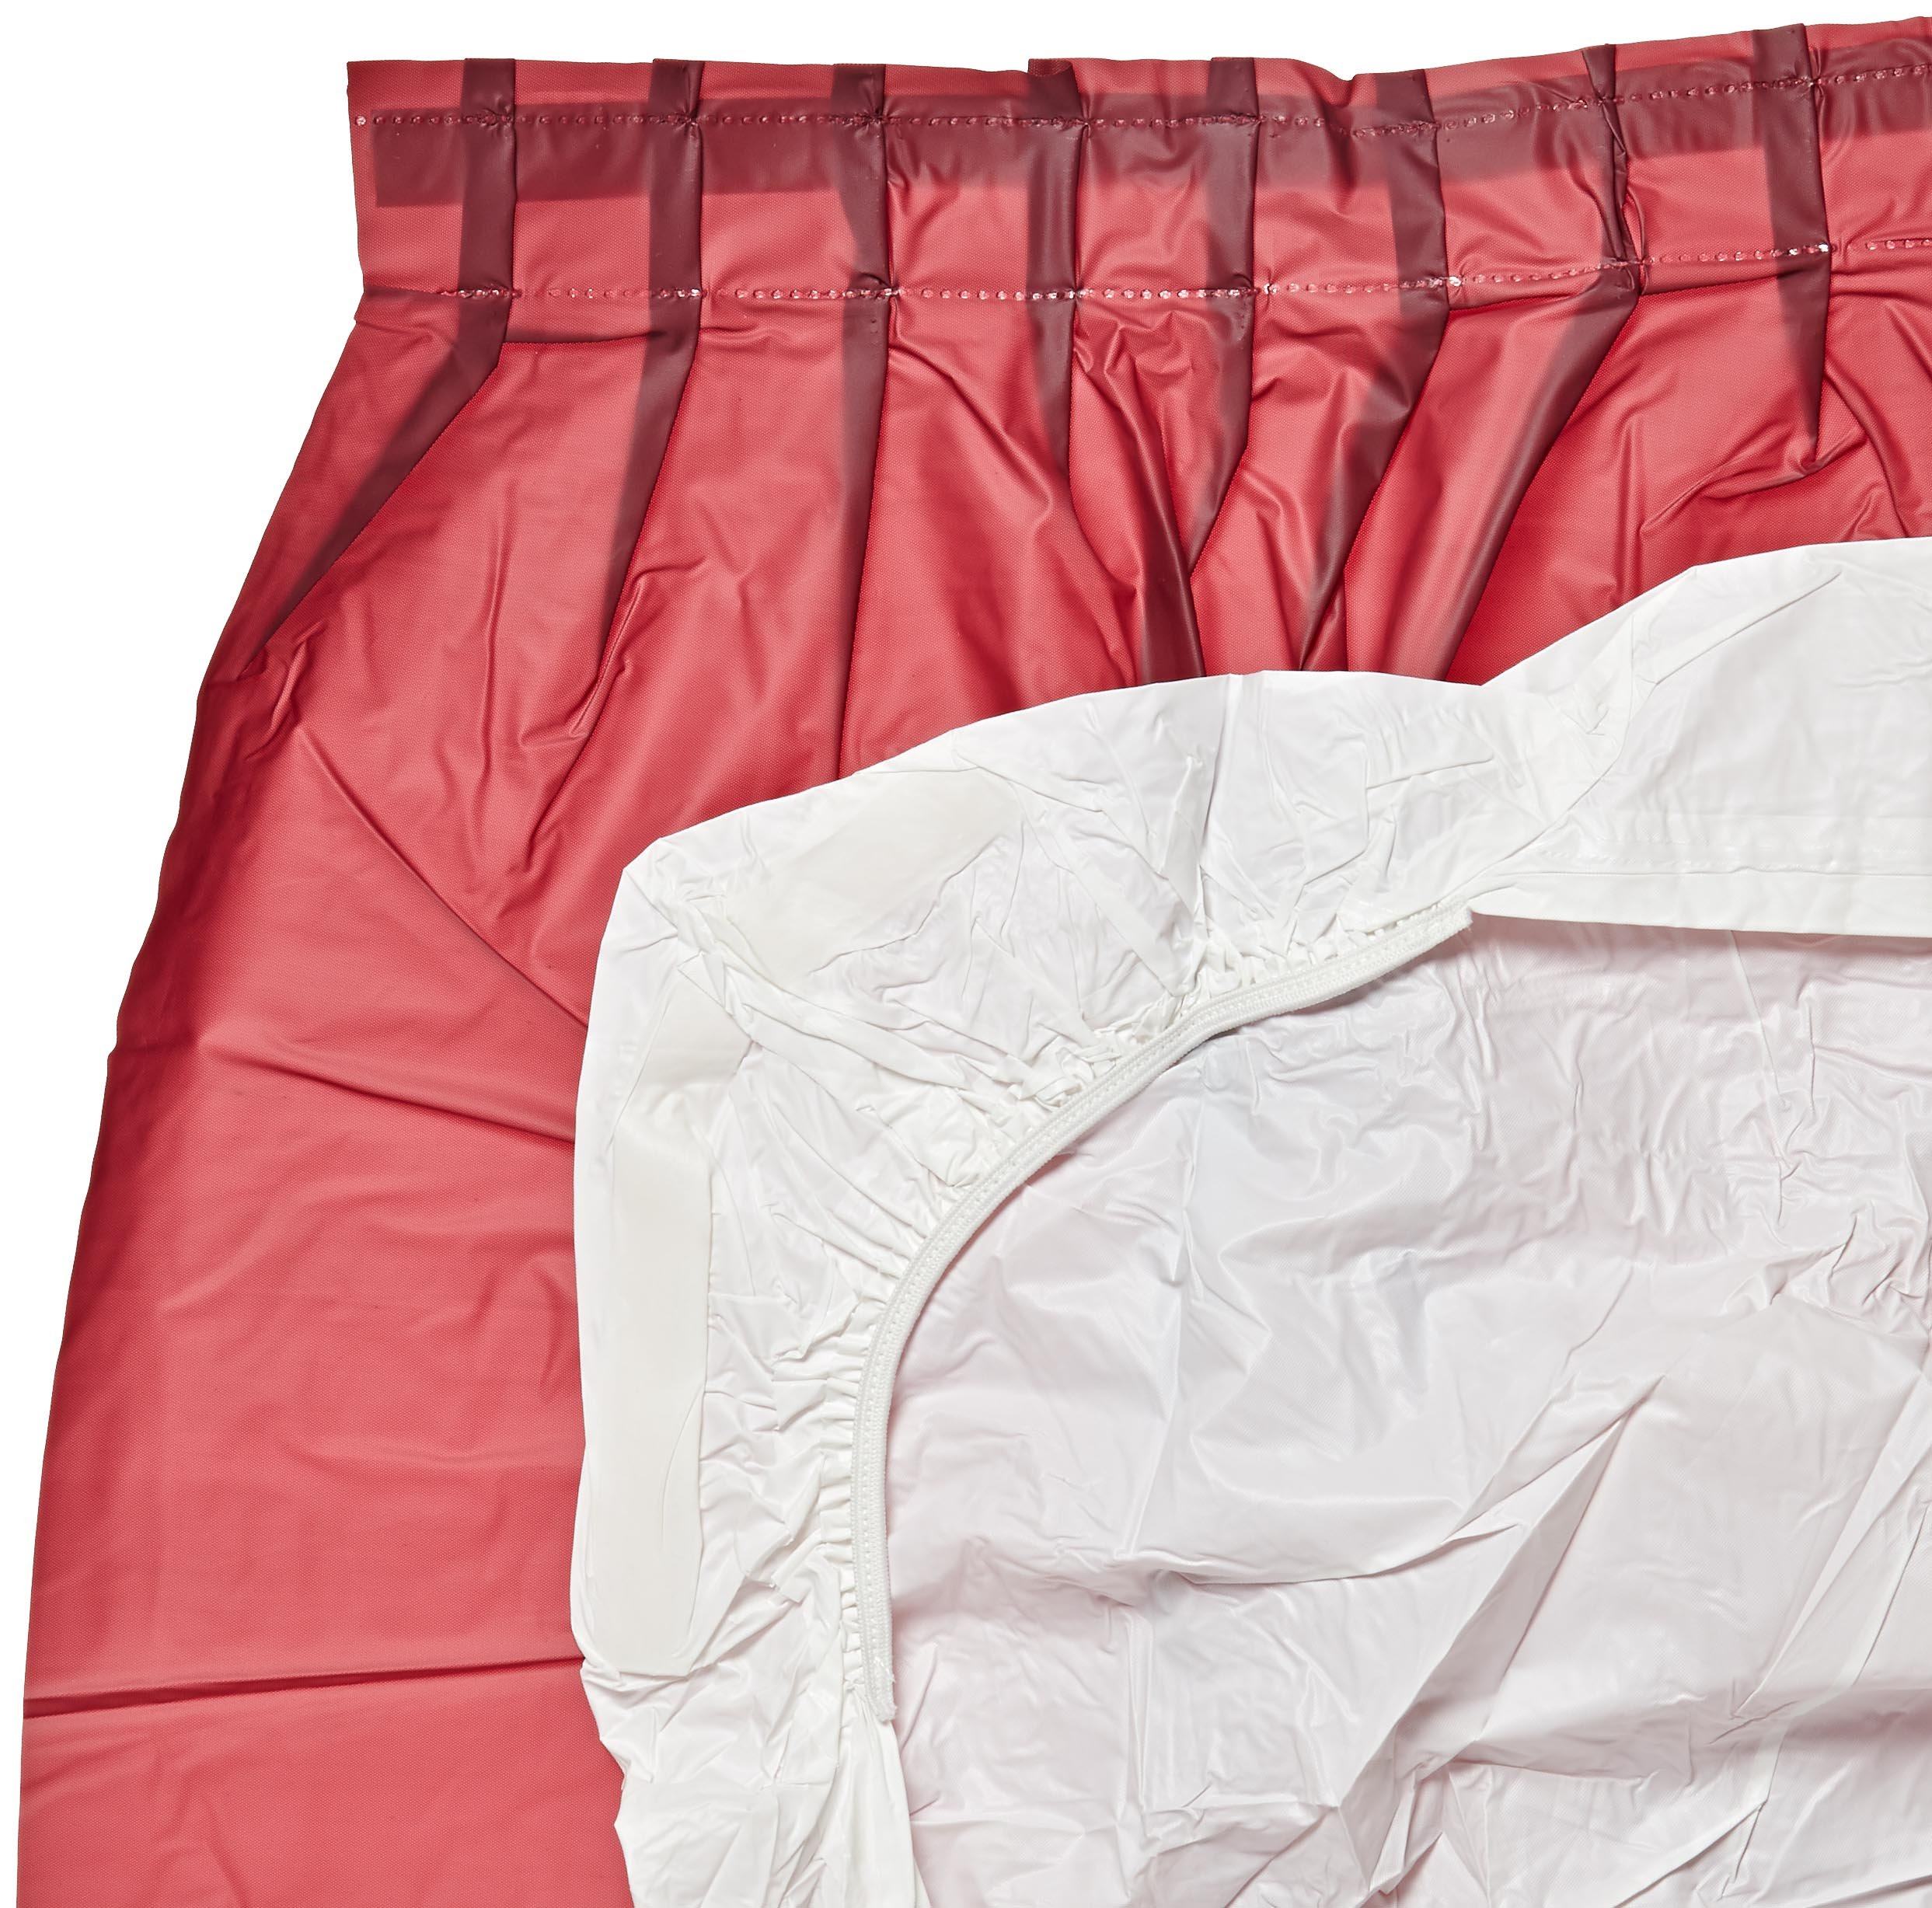 Kwik-Cover KS3096PK-M PKG. Maroon Kwik-Skirt With 30'' X 96'' White Cover Fitted Table Cover With Skirt, (1 full case of 10)